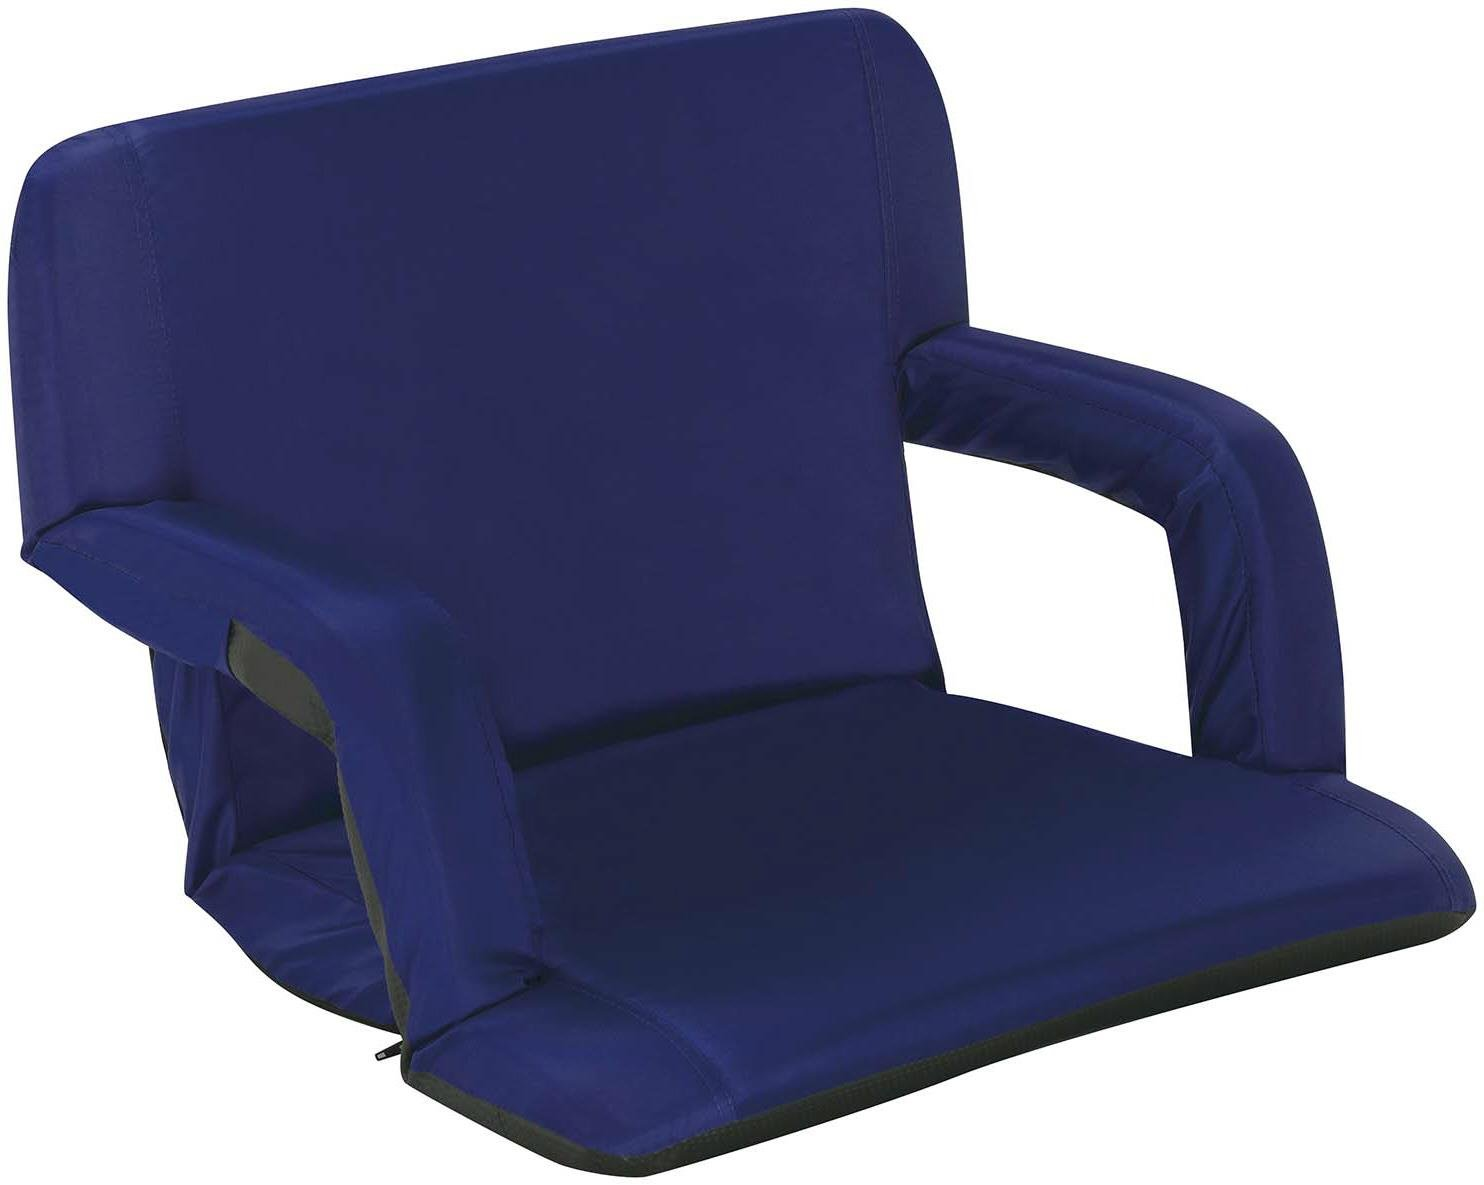 Stadium Seats Product : Naomi home venice portable reclining seat with armrest